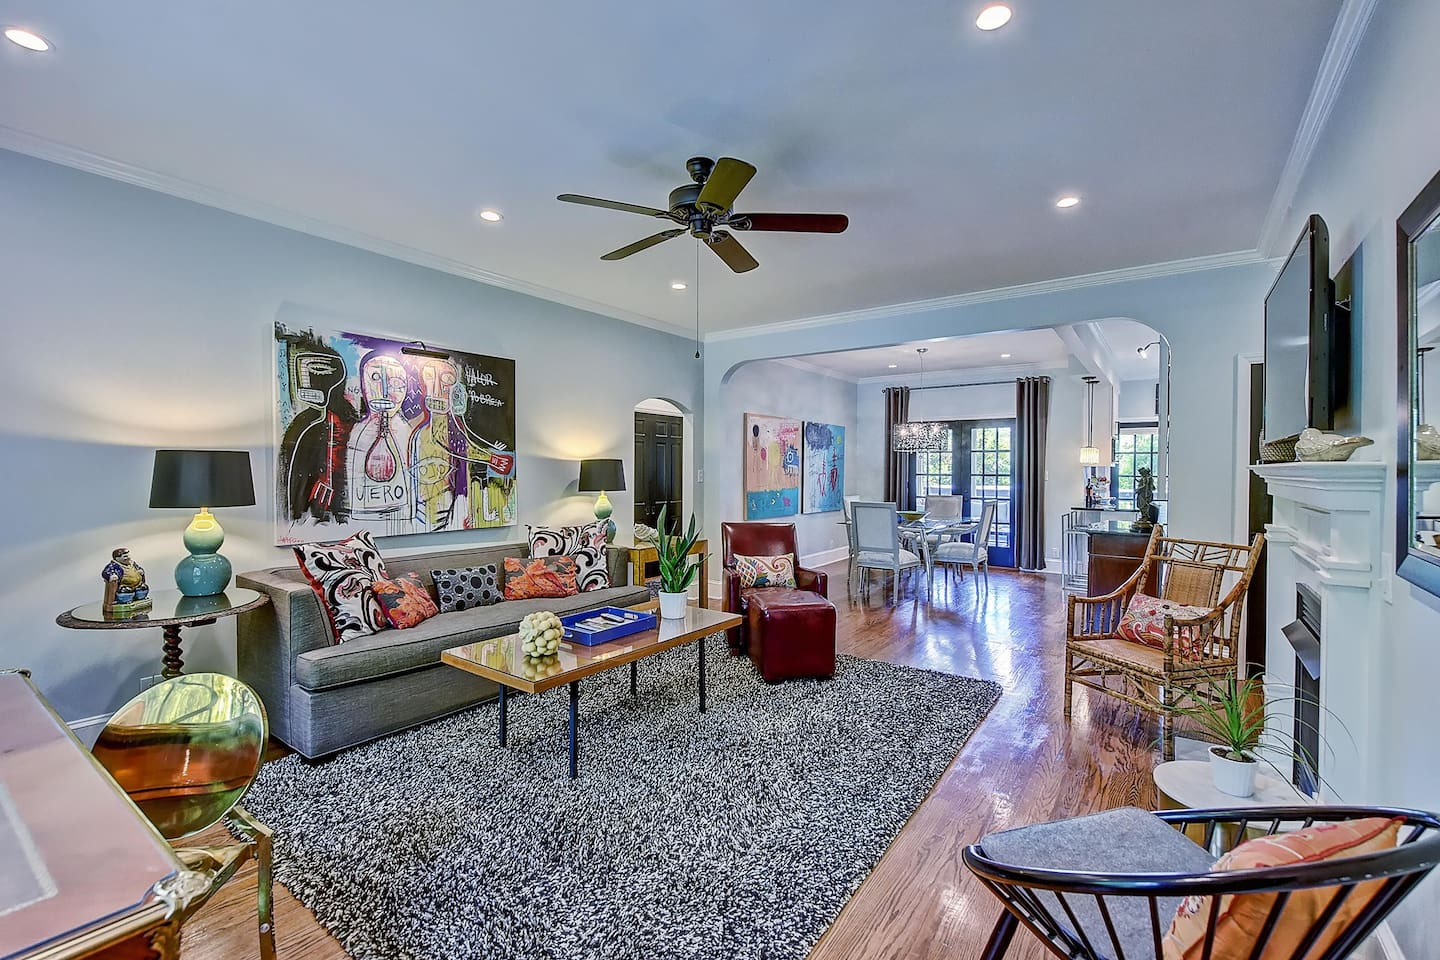 Five-Star Luxury Residence in the Heart of Myers Park-1 Mile to Uptown